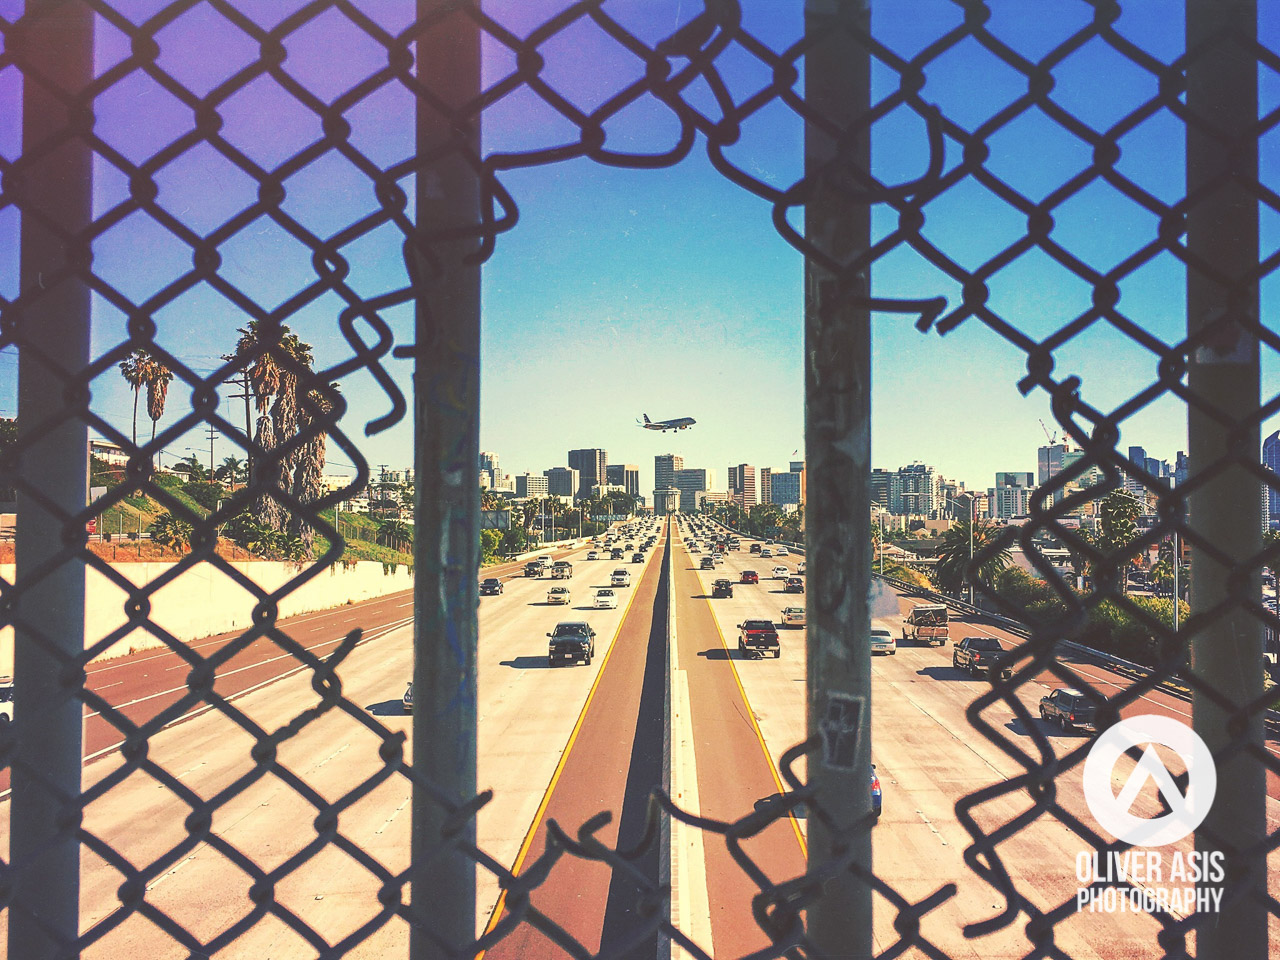 oliver-asis-adobe-creative-jam-winning-image-best-mobile-photography-peoples-choice-san-diego